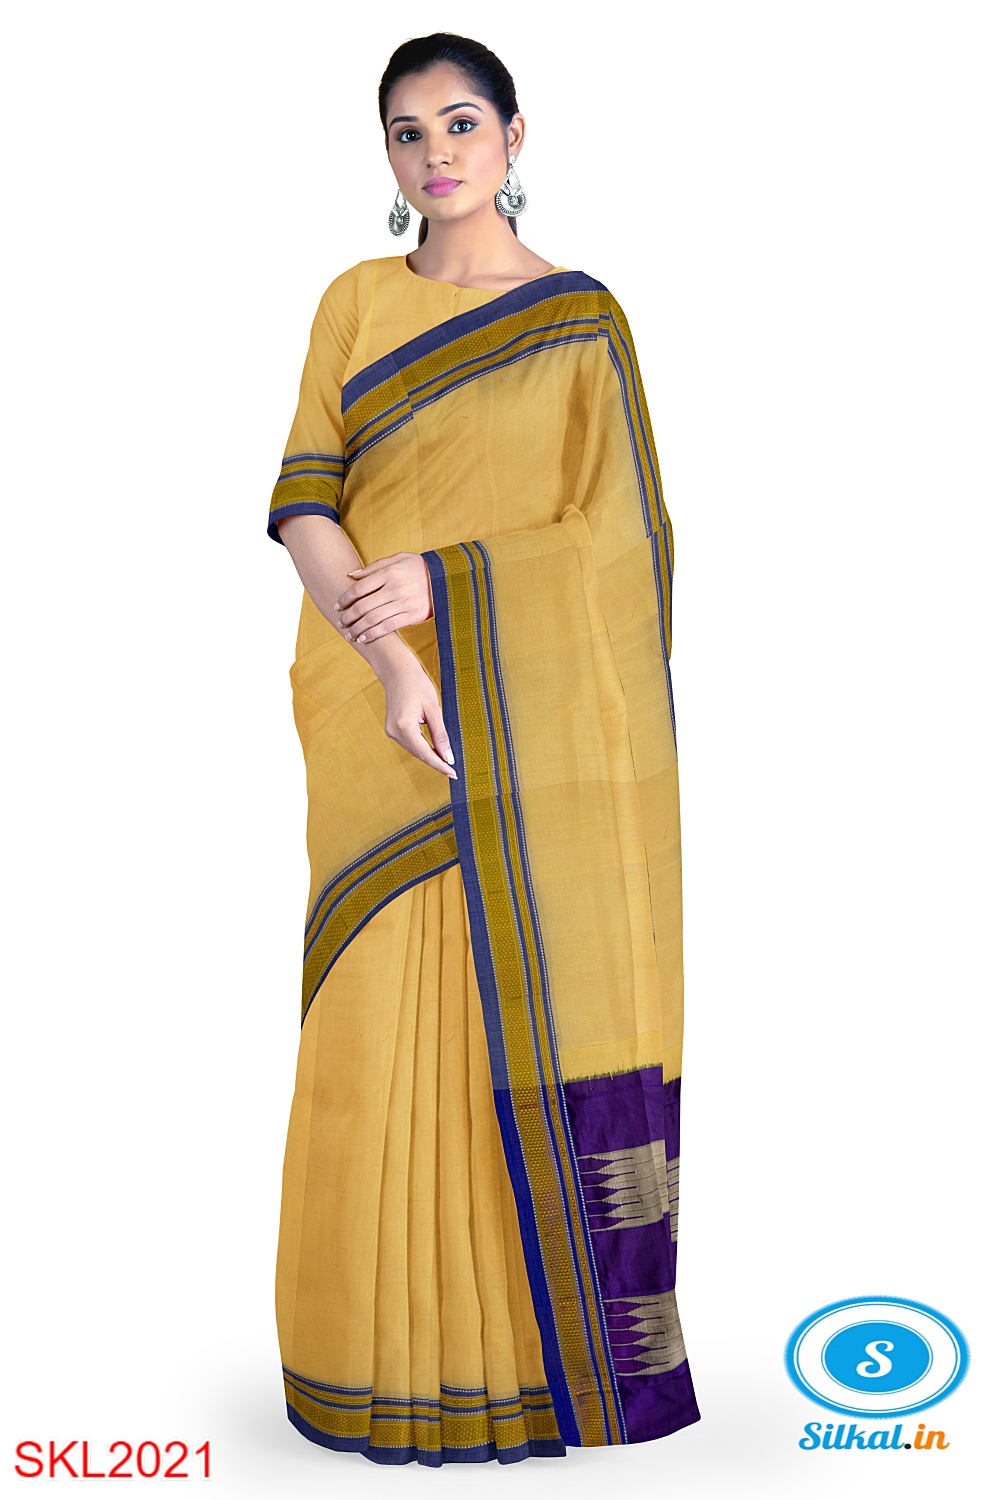 ILKAL HANDLOOM SILK BY MASRISE COTTON SAREE